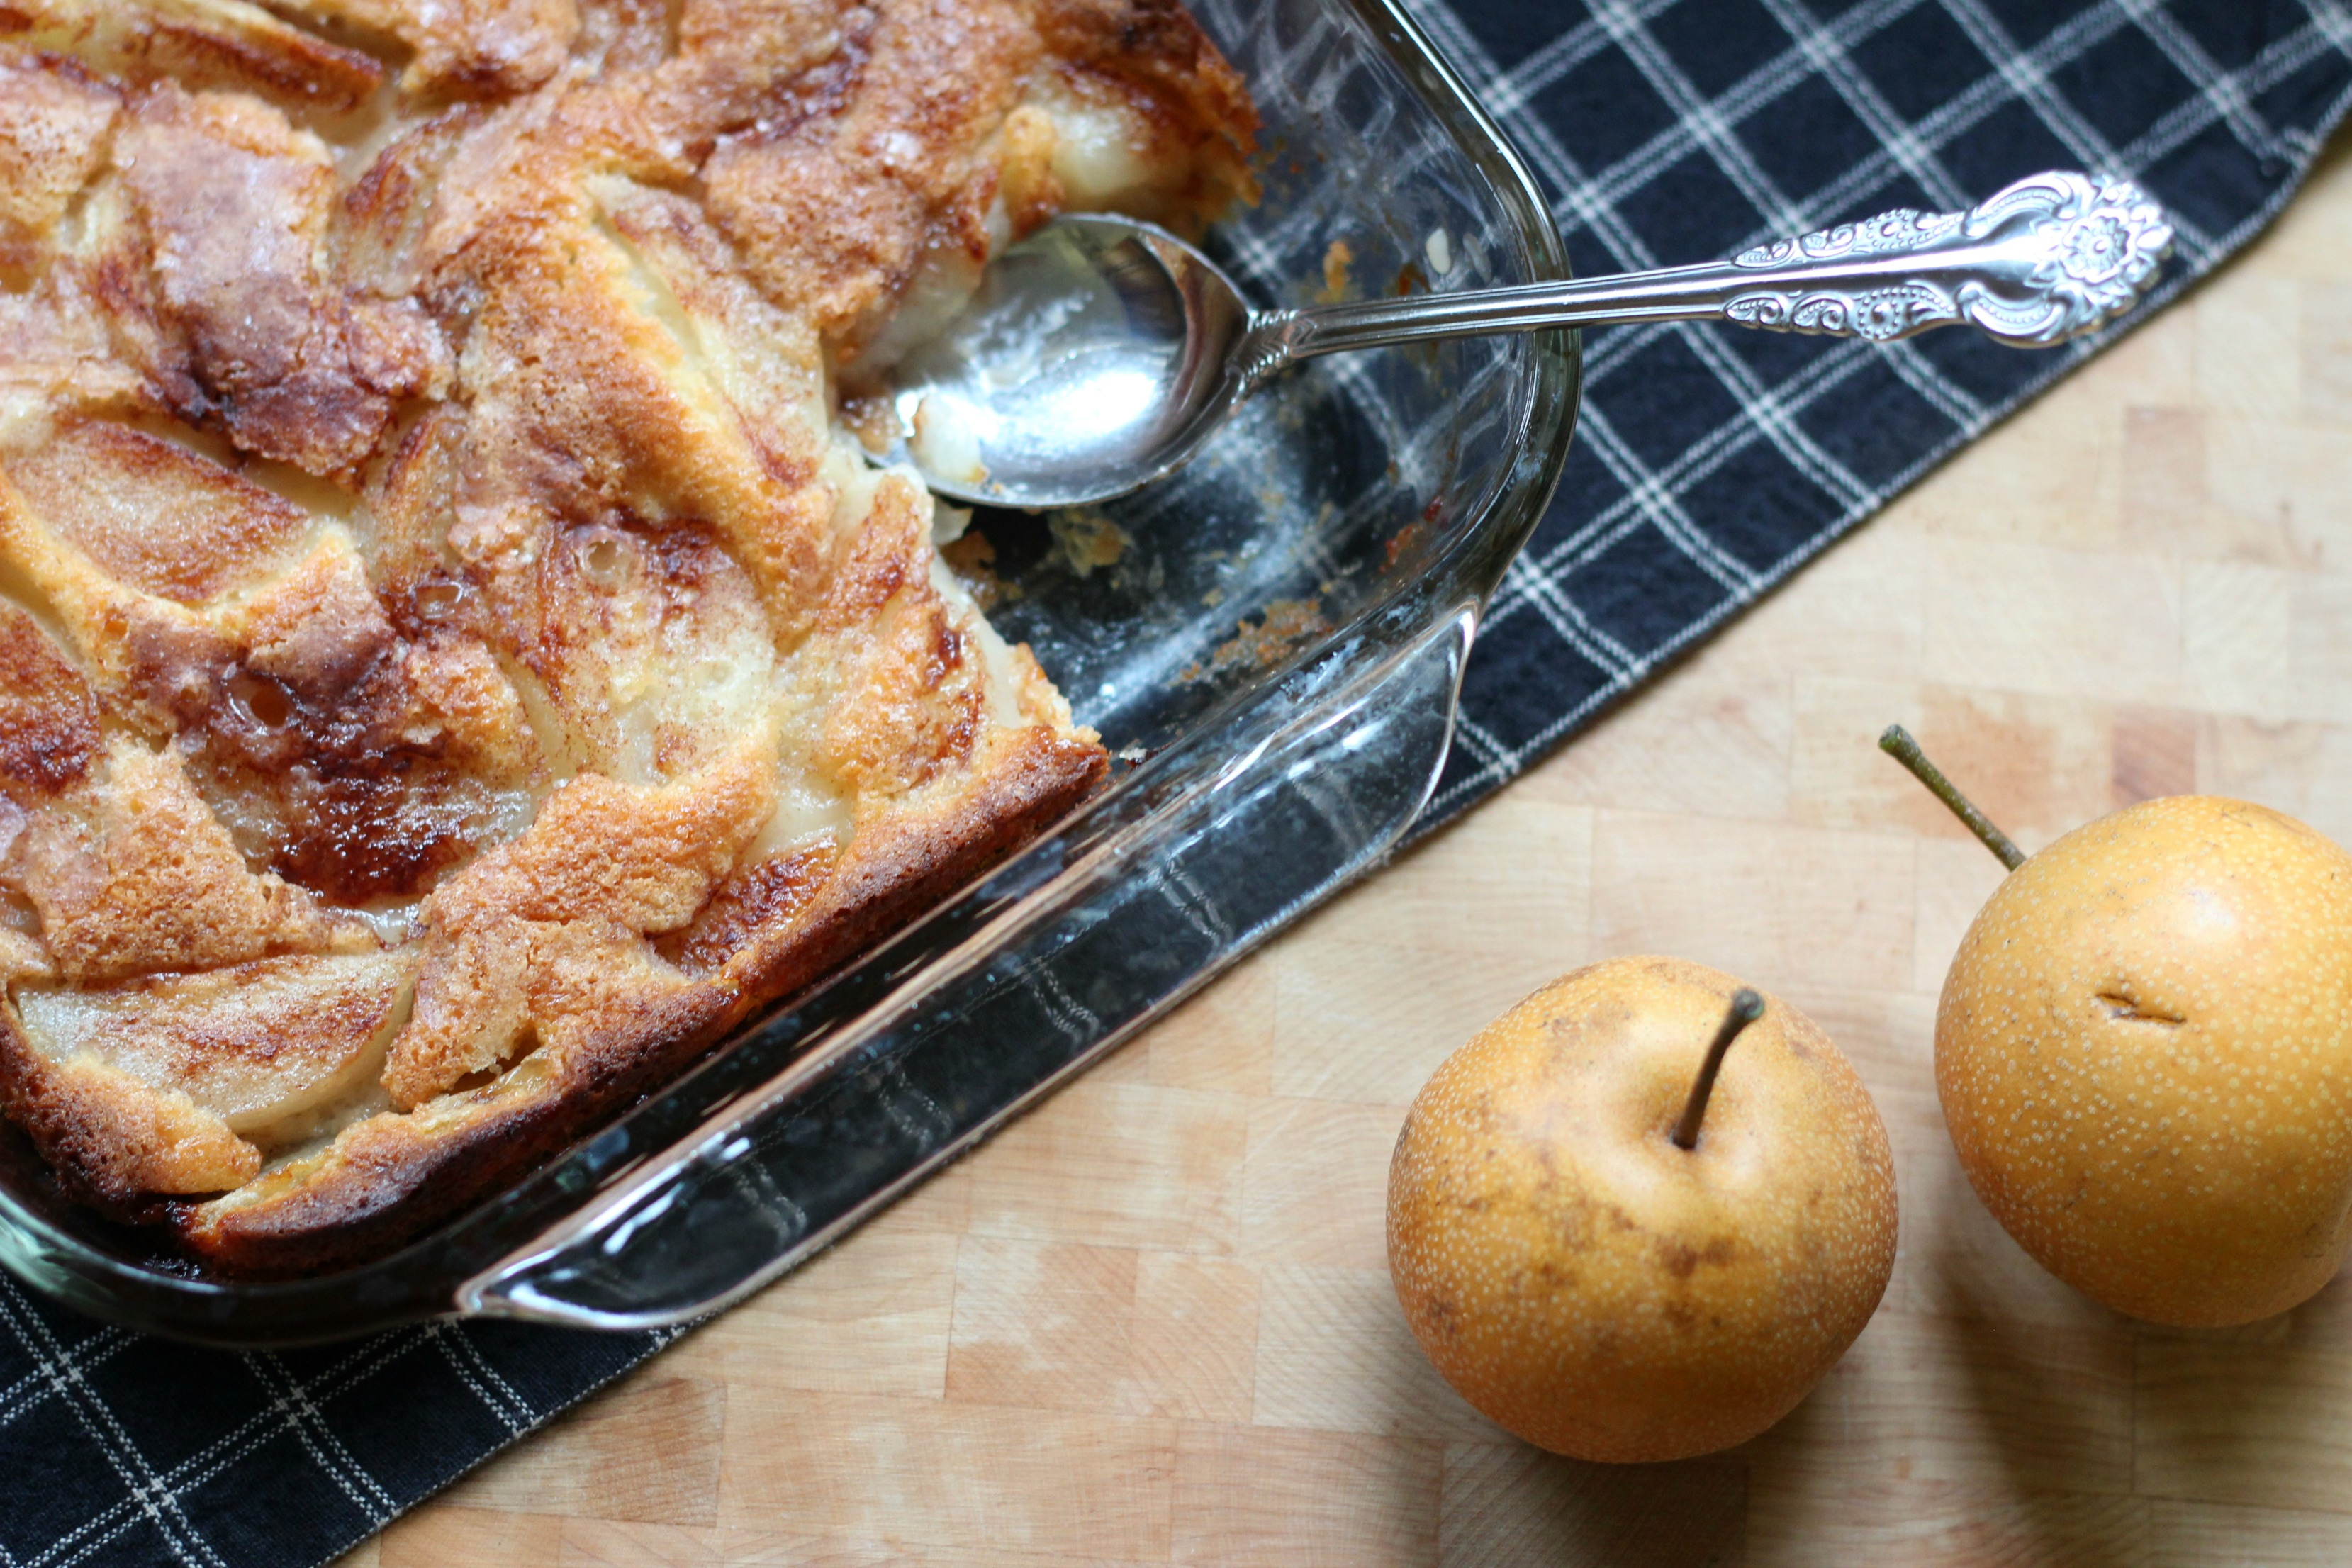 Asian Pear Cobbler Dessert